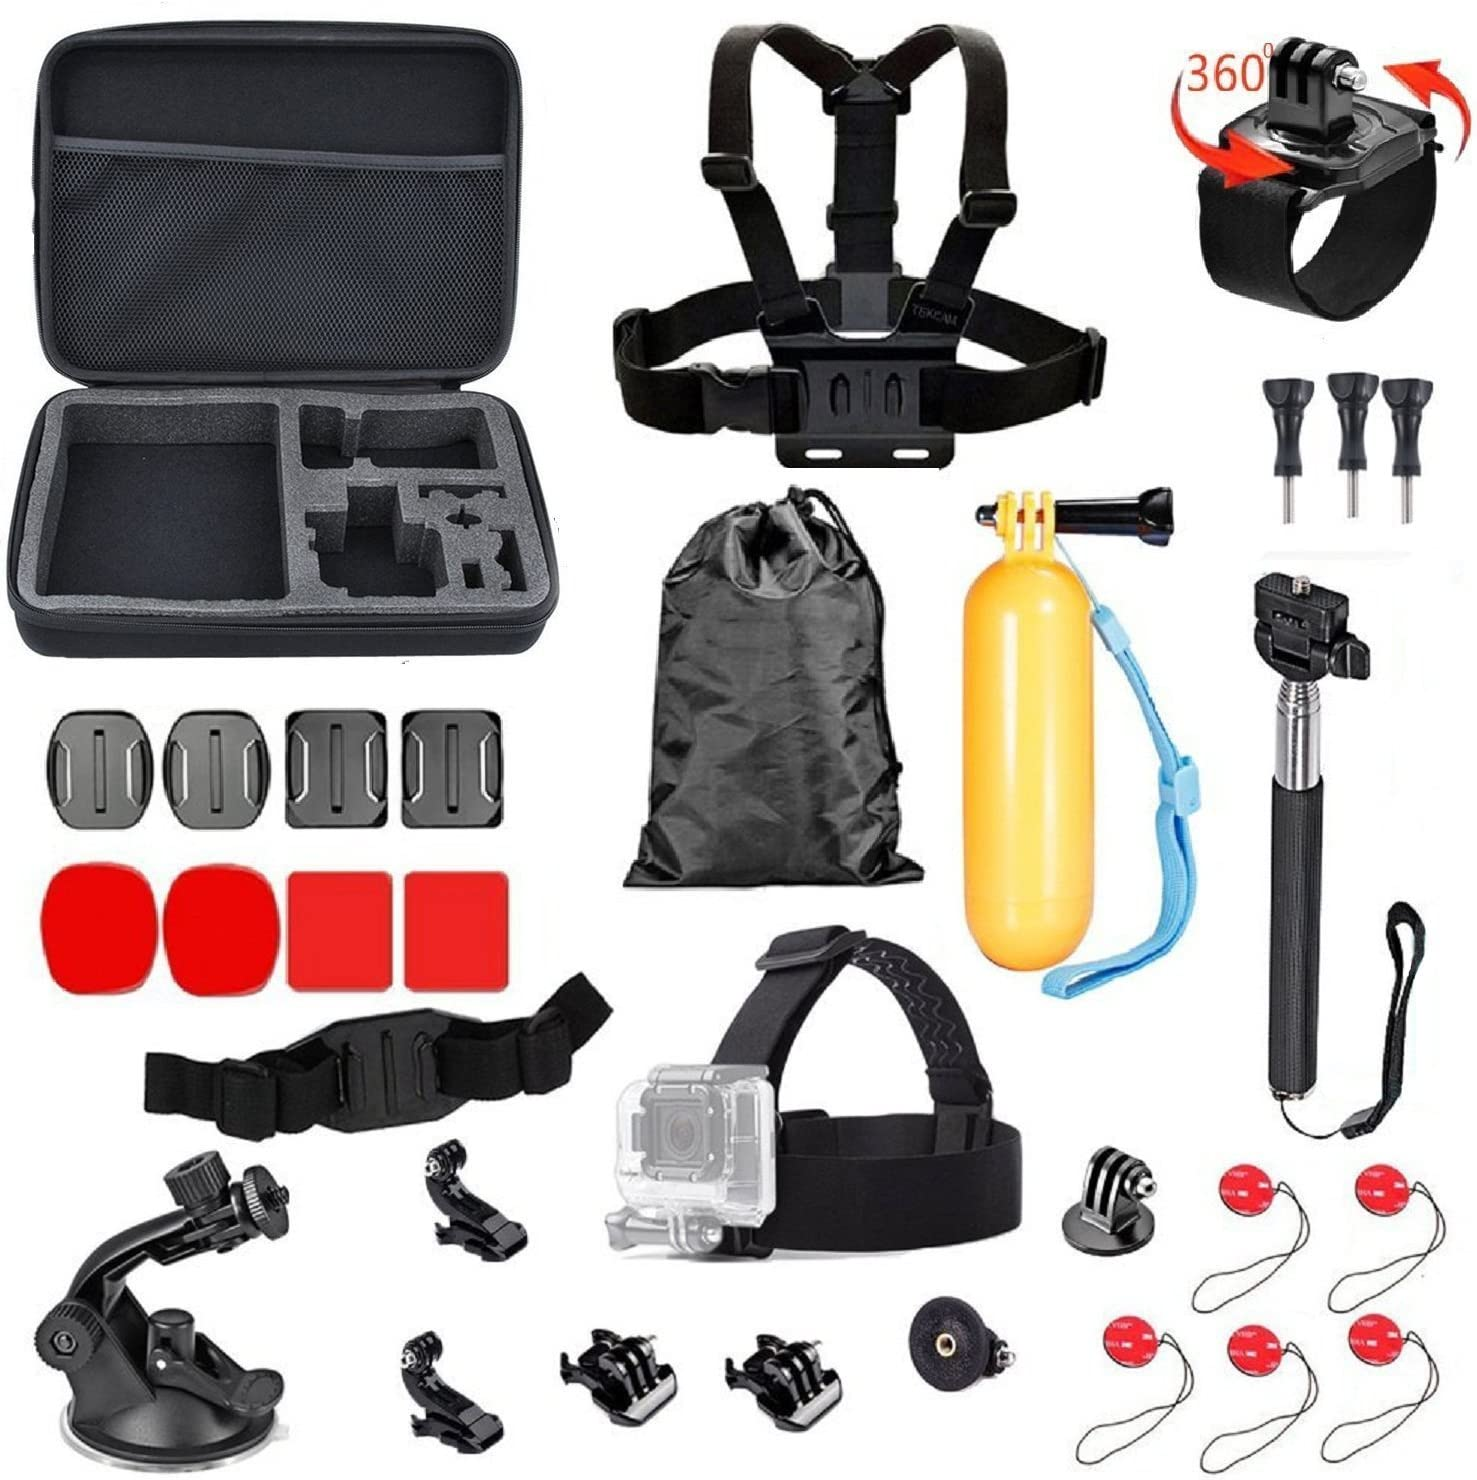 TEKCAM Sport Accessory Kit Compatible with Gopro Hero 7 6 DBPOWER Vtin 4K AKASO V50 EK7000 Campark 4k Action Camera in Swimming Rowing Skiing Climbing Bike Riding Camping Diving Outdoor Sports